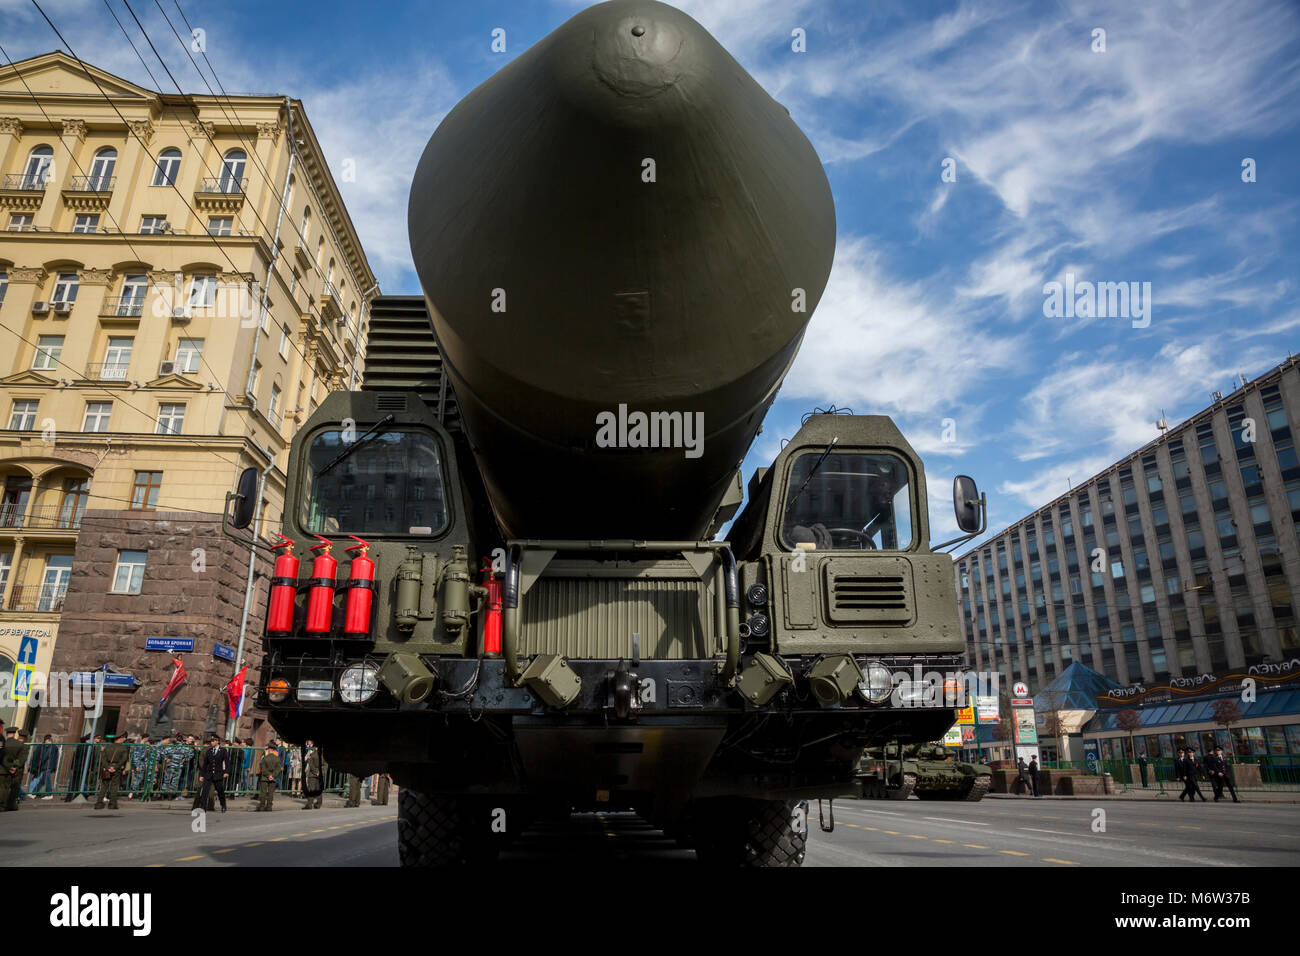 A YARS RS-24 solid propellant inter-continental ballistic missile moves through Moscow's Tverskaya street during - Stock Image